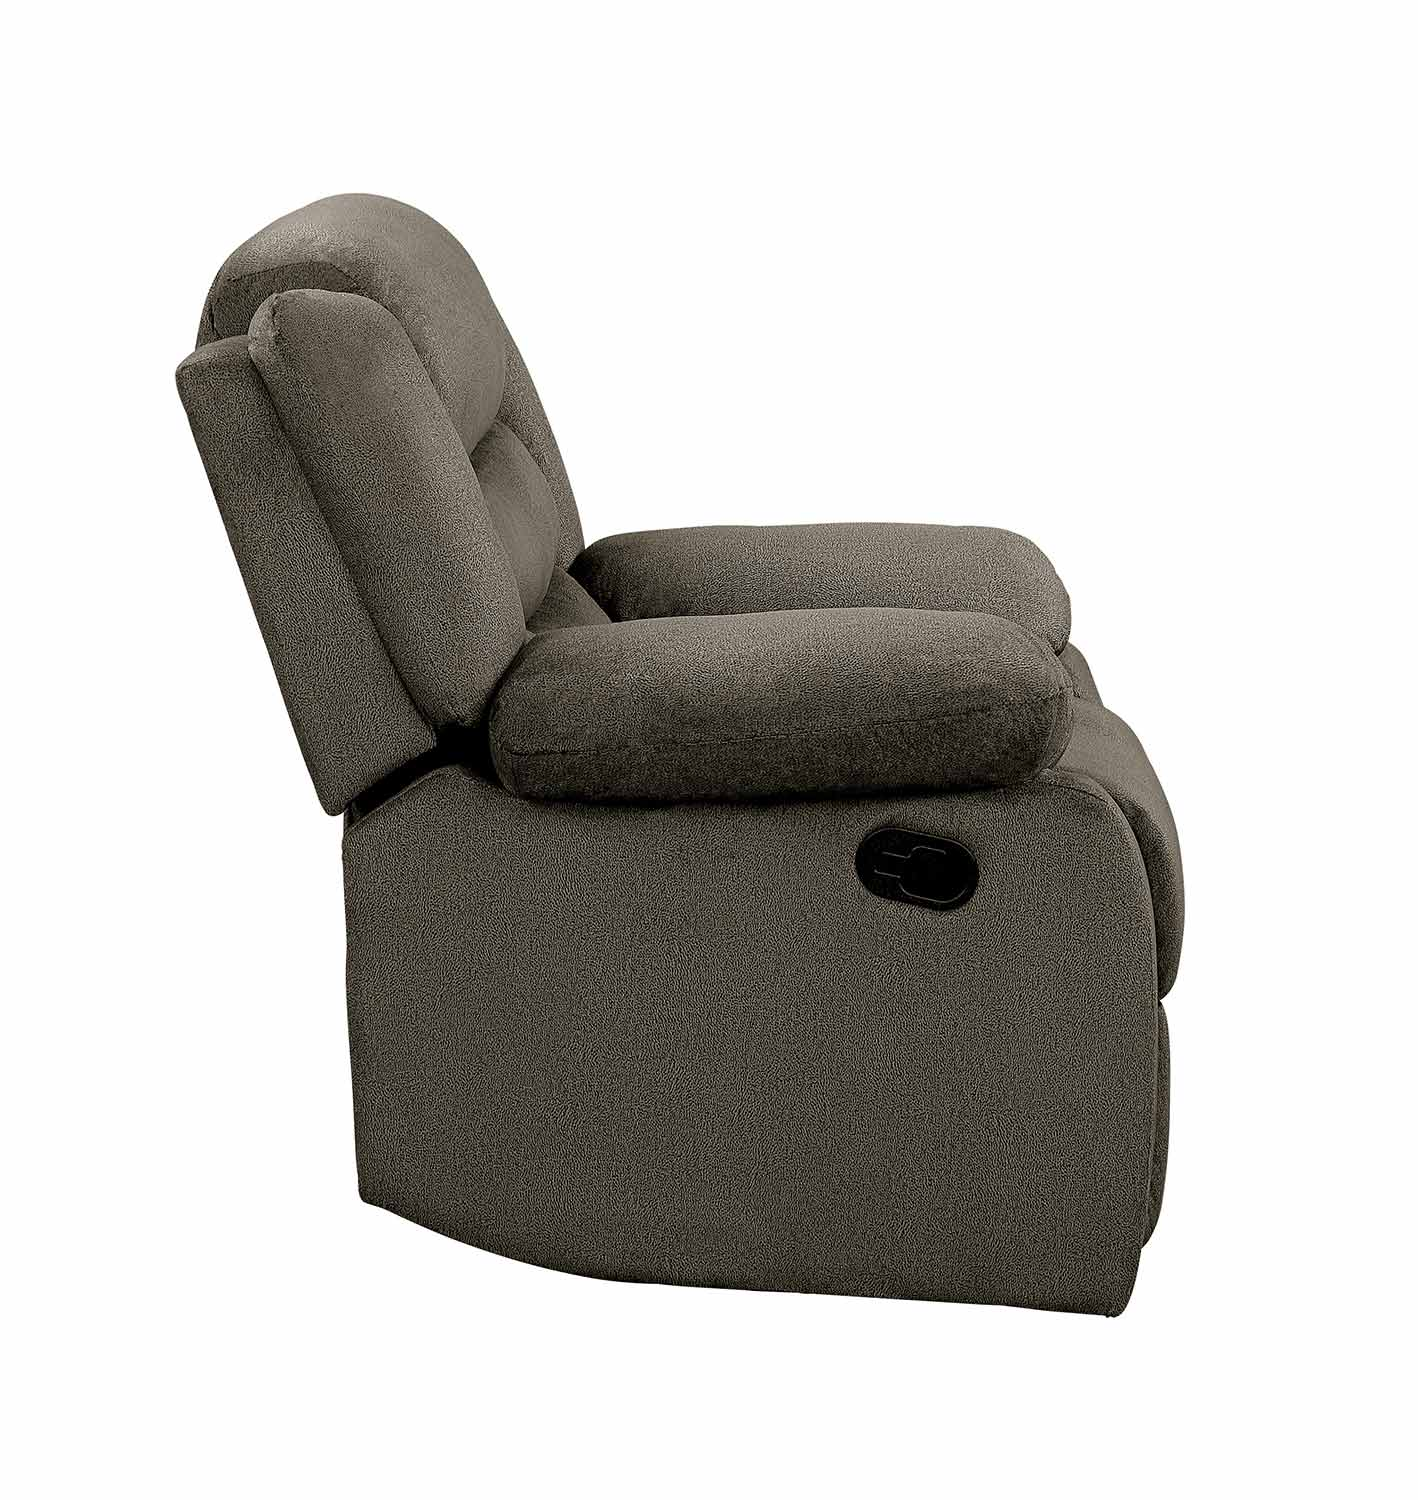 Homelegance Discus Reclining Chair - Brown